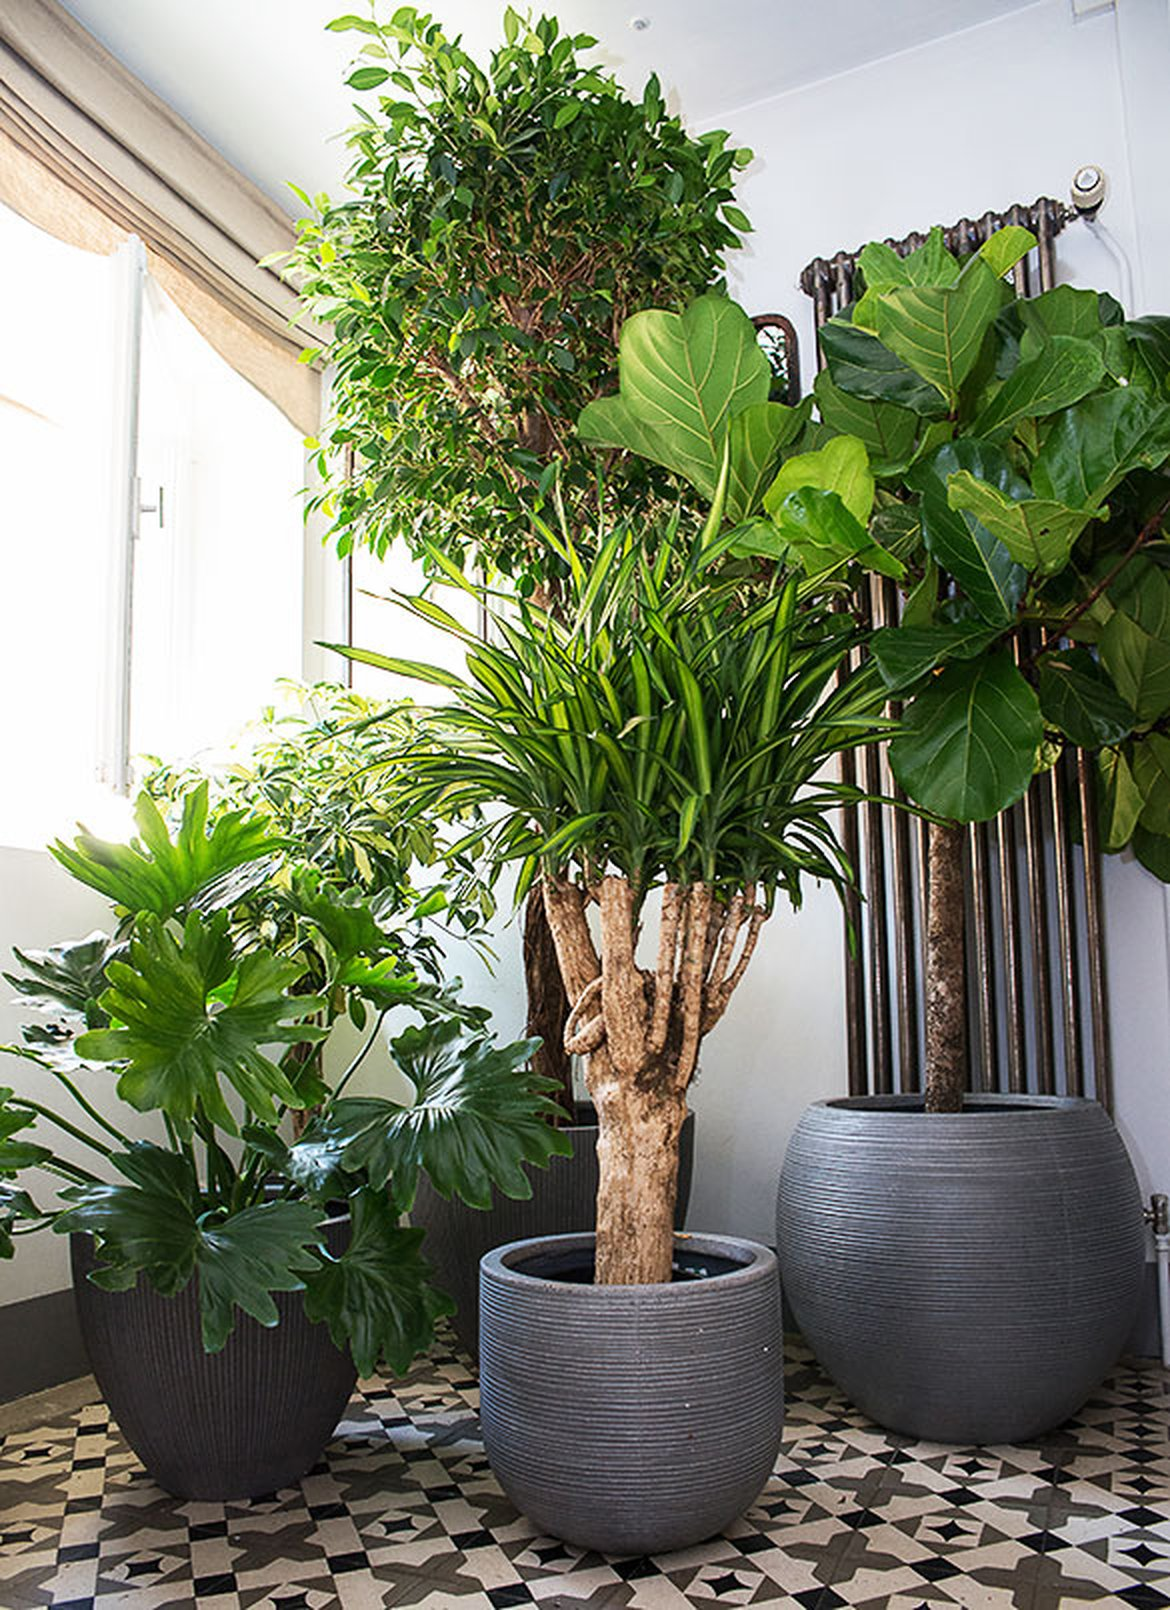 Plantes d interieur decoration fashion designs for Plante design d interieur